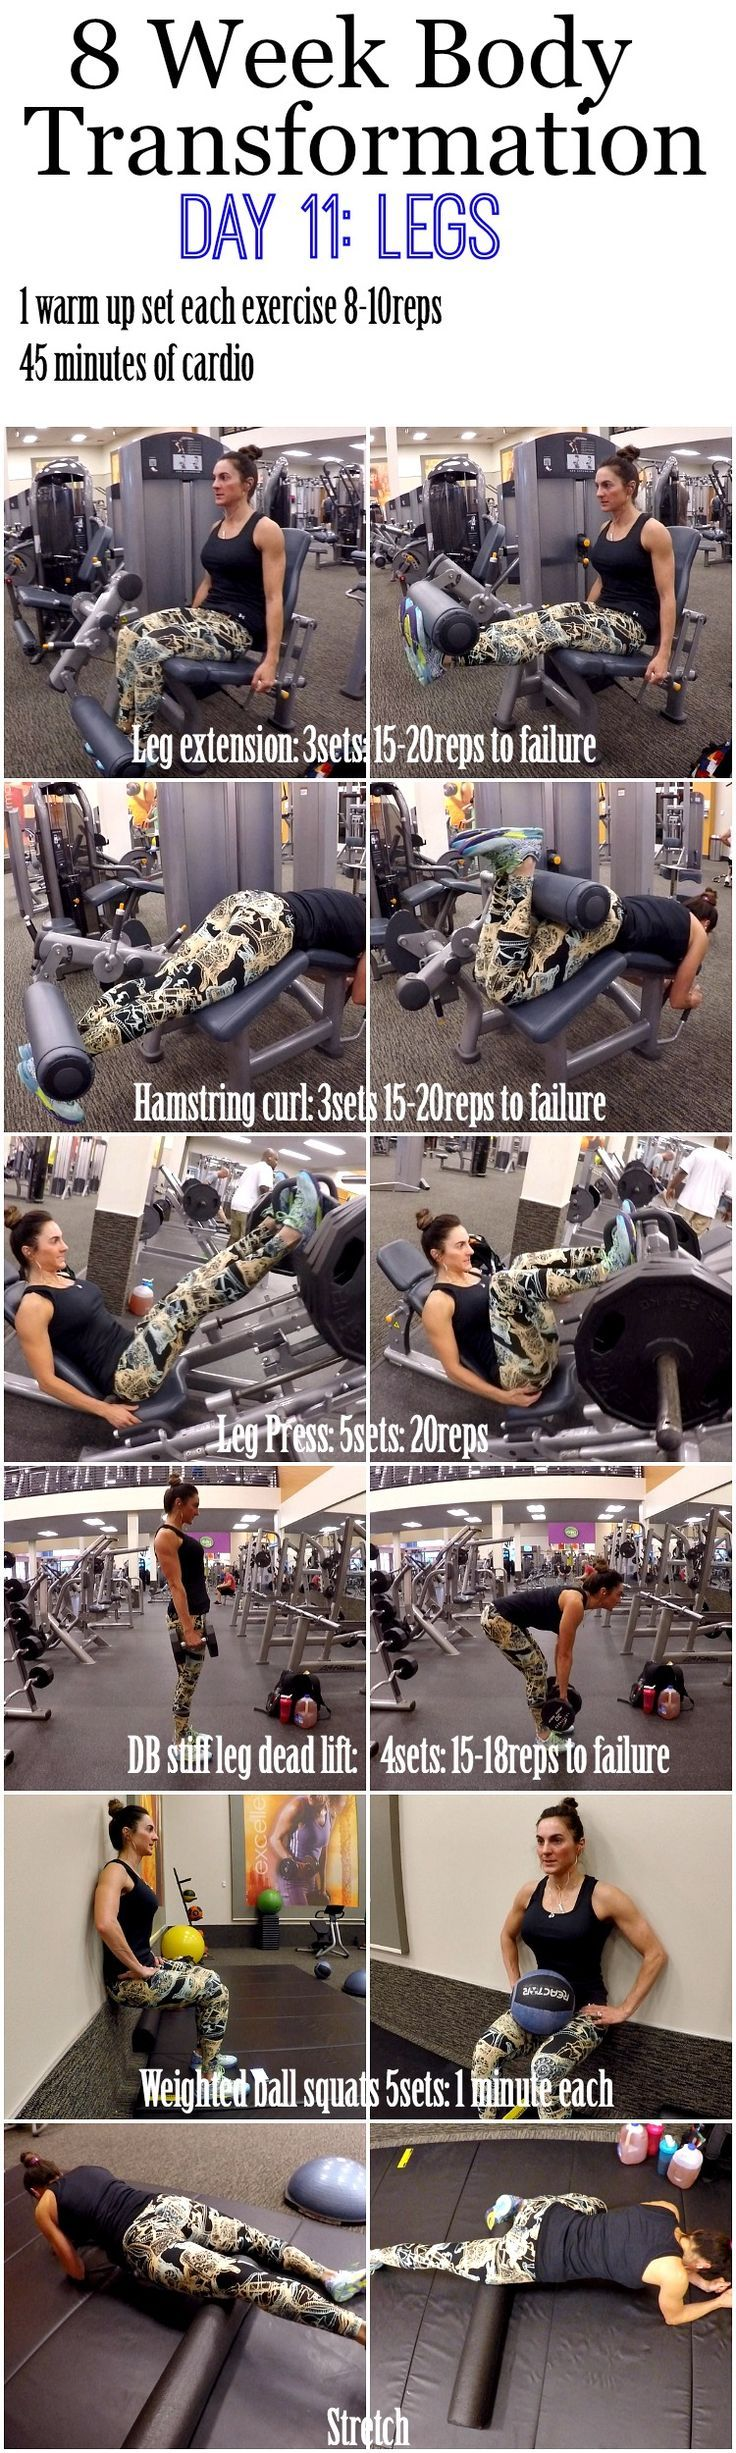 Welcome to Day 11, another day of LEGS.  Yesterday, Day 10 was an active rest day so make sure to get your cardio in, but leave the weights alone.  Today we have 5 exercises for legs, so make sure to watch the video and pay attention to the different sets/reps in this workout.  We have...Read More »